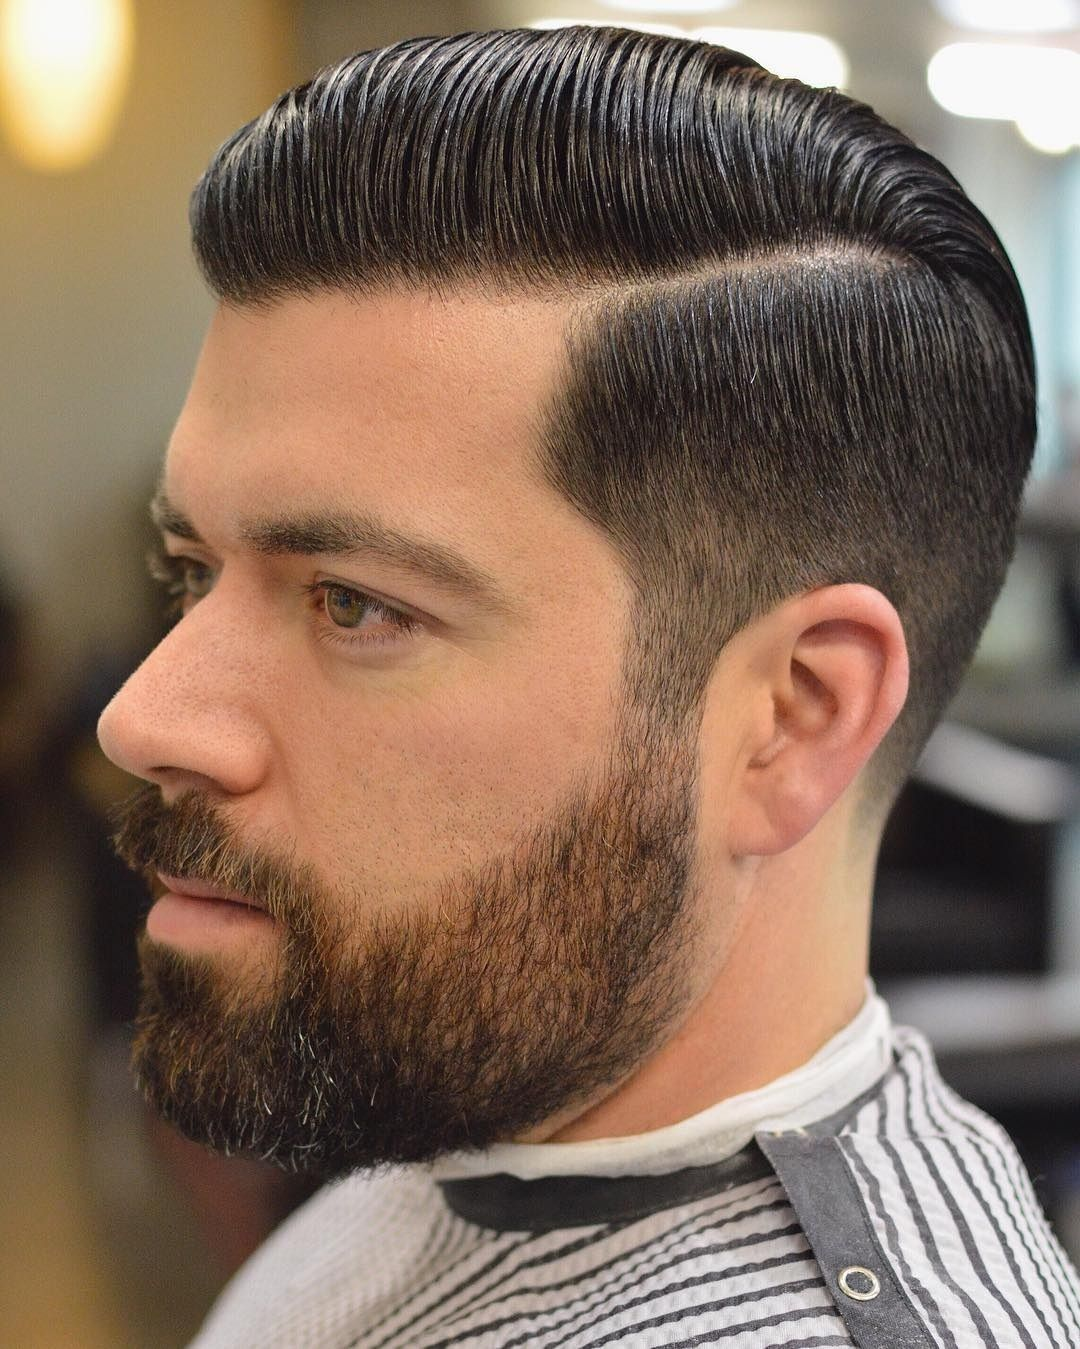 Tending New Simple Hairstyle Boy Images And Tips Comb Over Fade